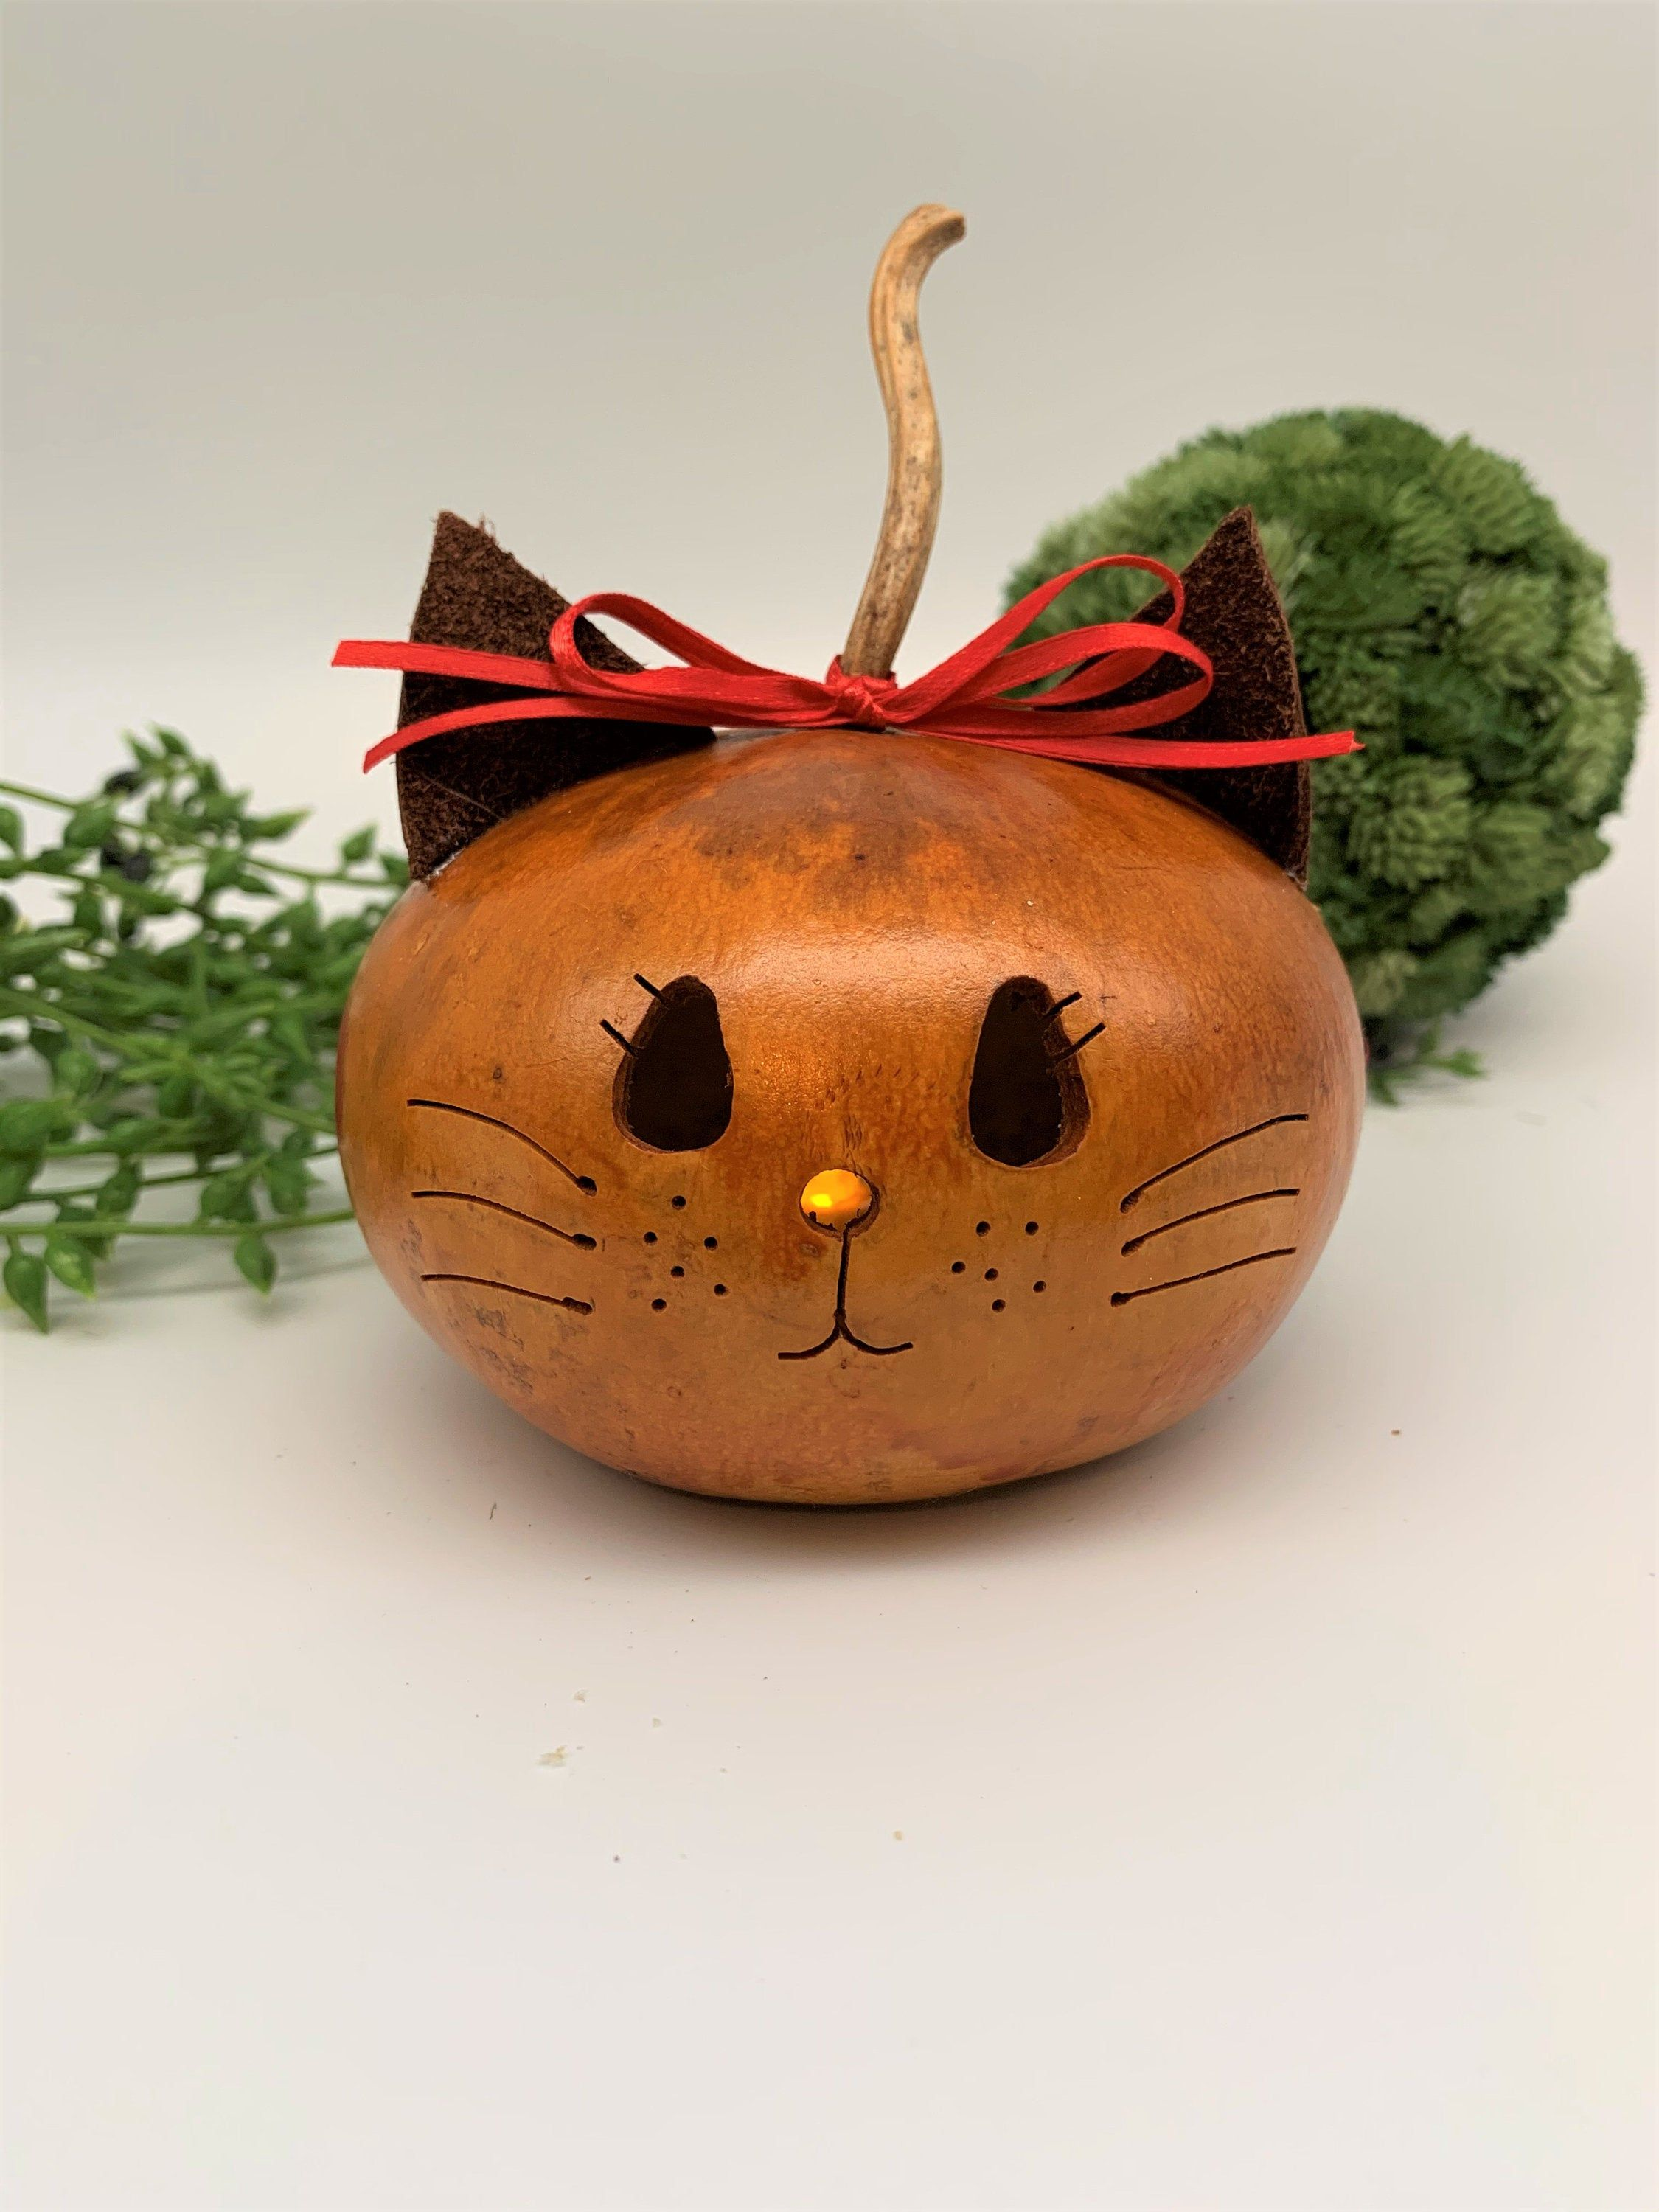 Kitty Cat Gourd Decoration in 2020 Decorative gourds